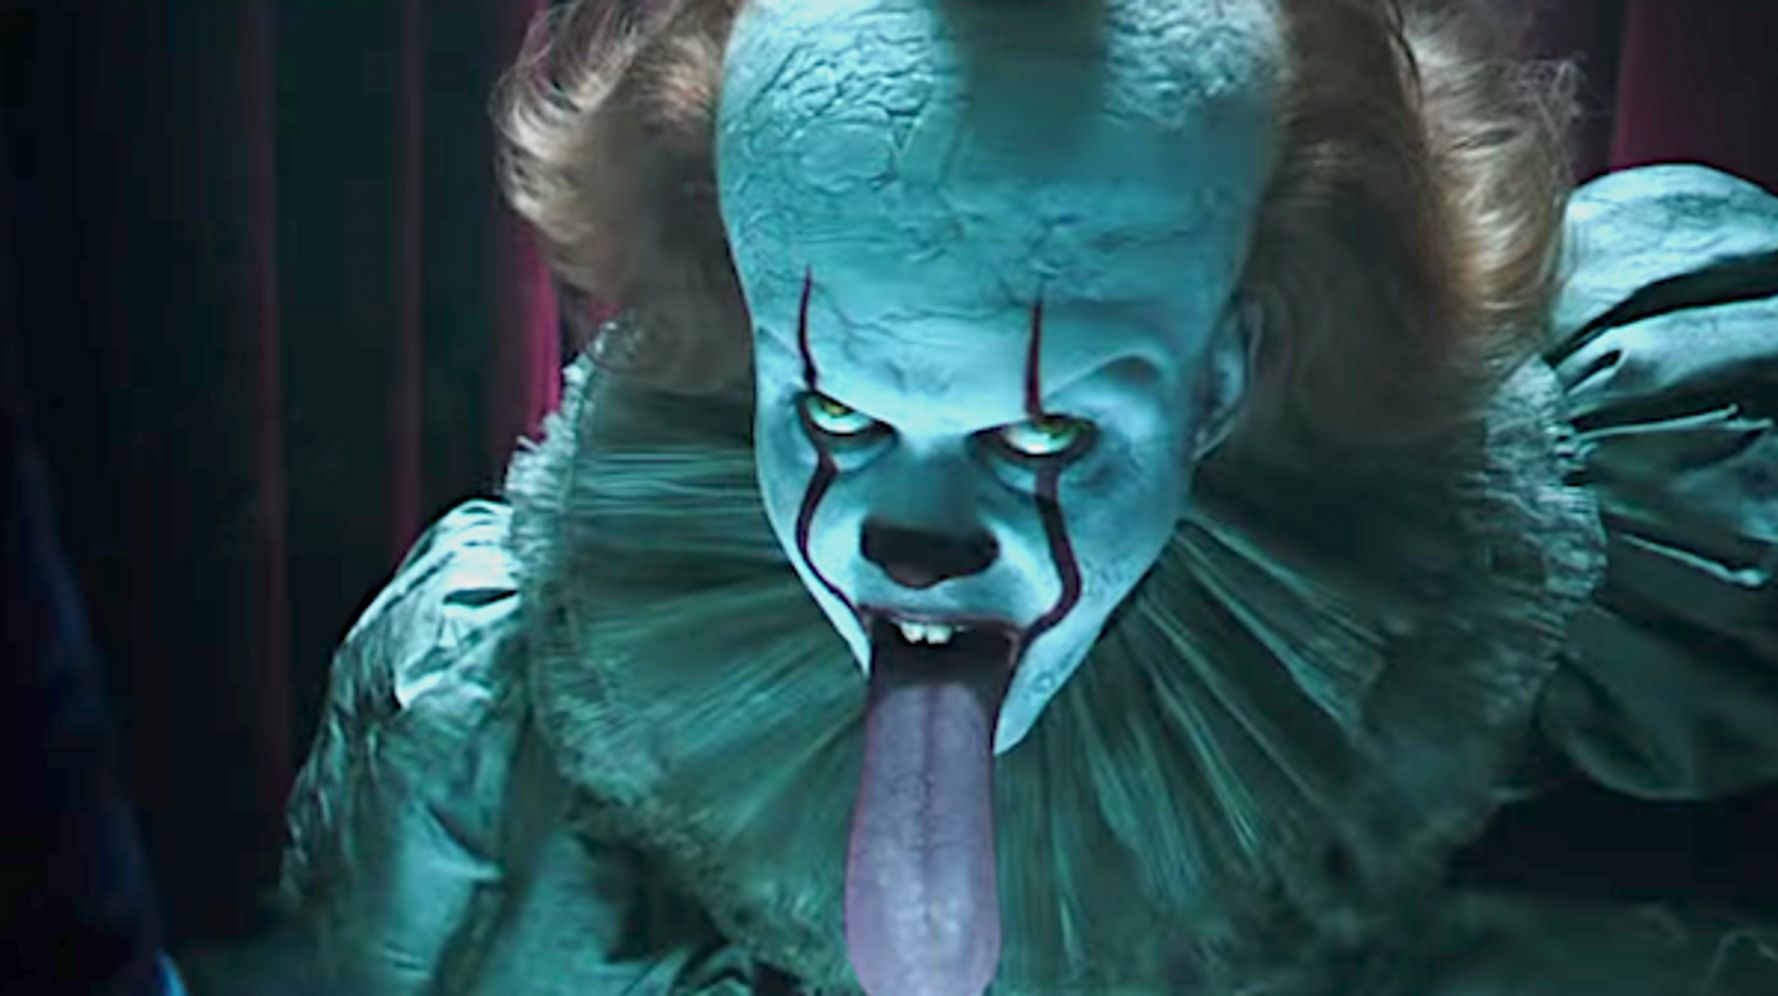 'It: Chapter Two' Kills At The Box Office With $91 Million Debut